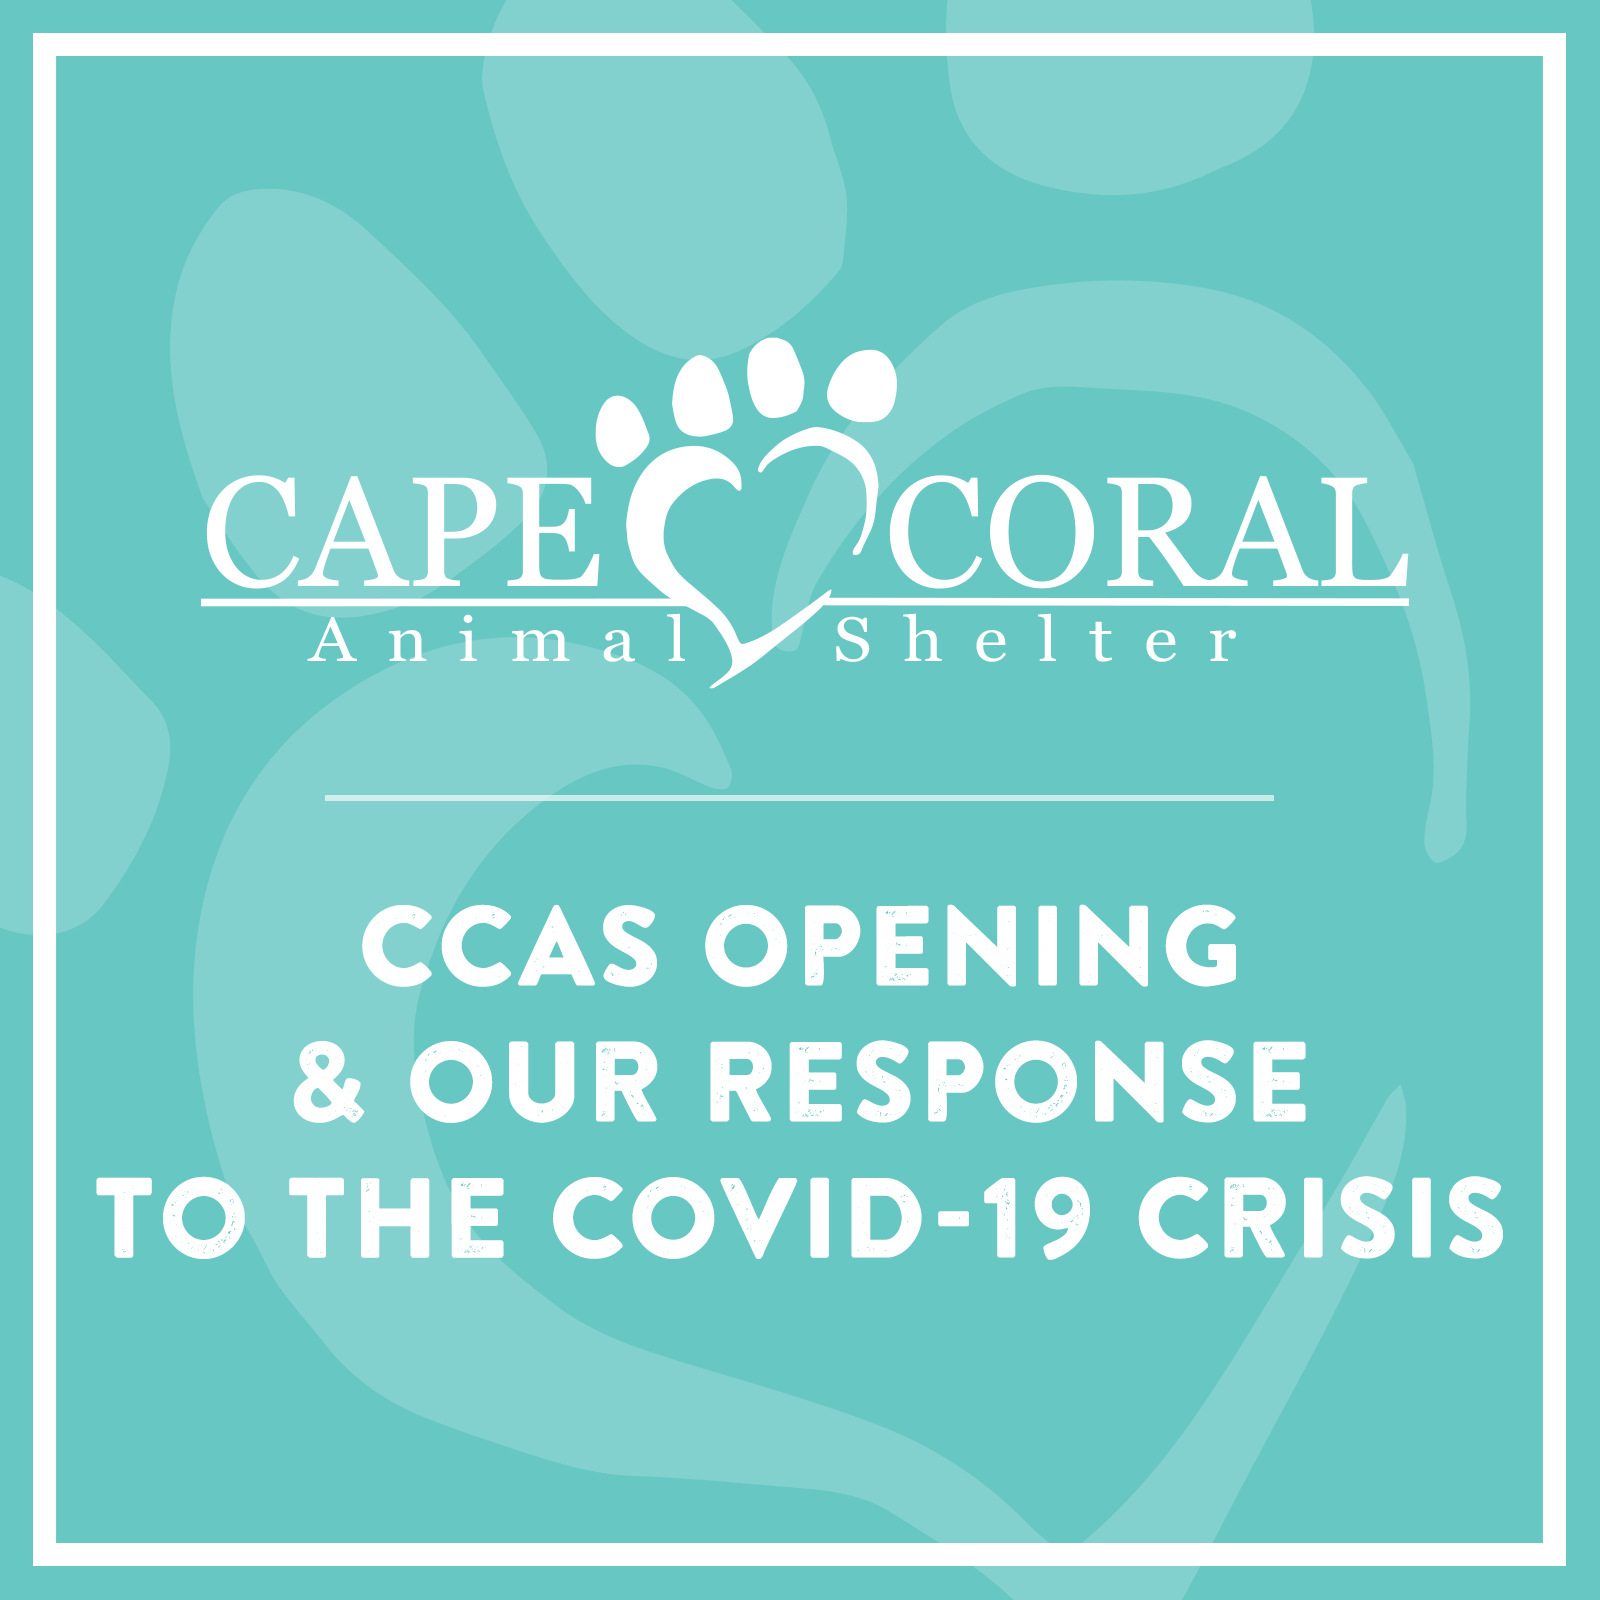 CCAS Opening and Our Response to the COVID-19 Crisis